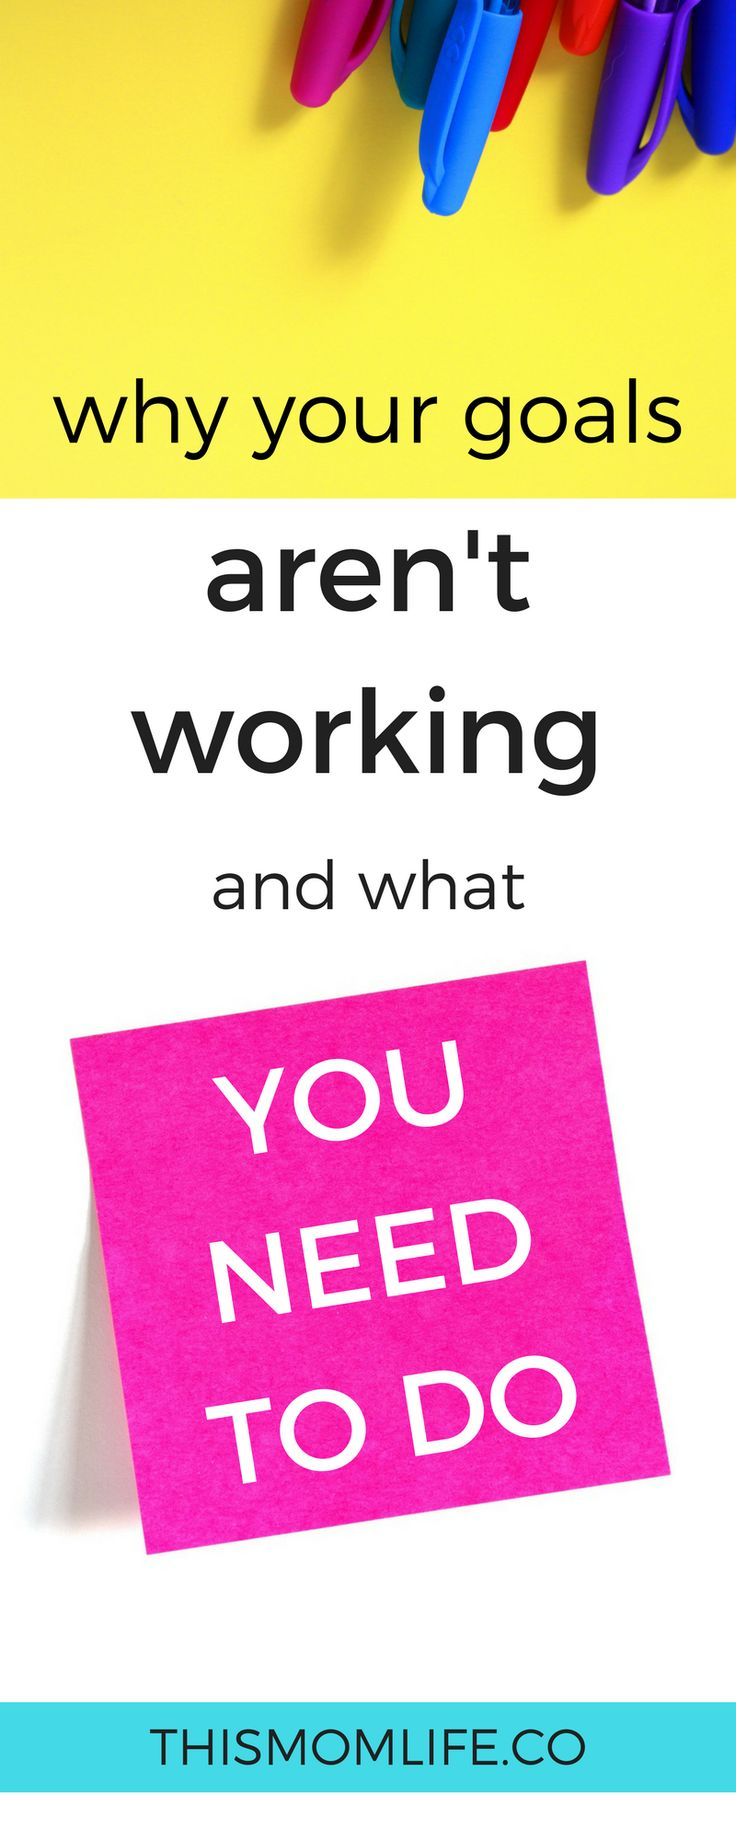 Why Goal Setting doesn't work and what you need to do to build your dream life. Motivation, self-care, Mom Tips, Work-Life Balance, Career, Working Mom, Inspiration, Advice, Self-care.